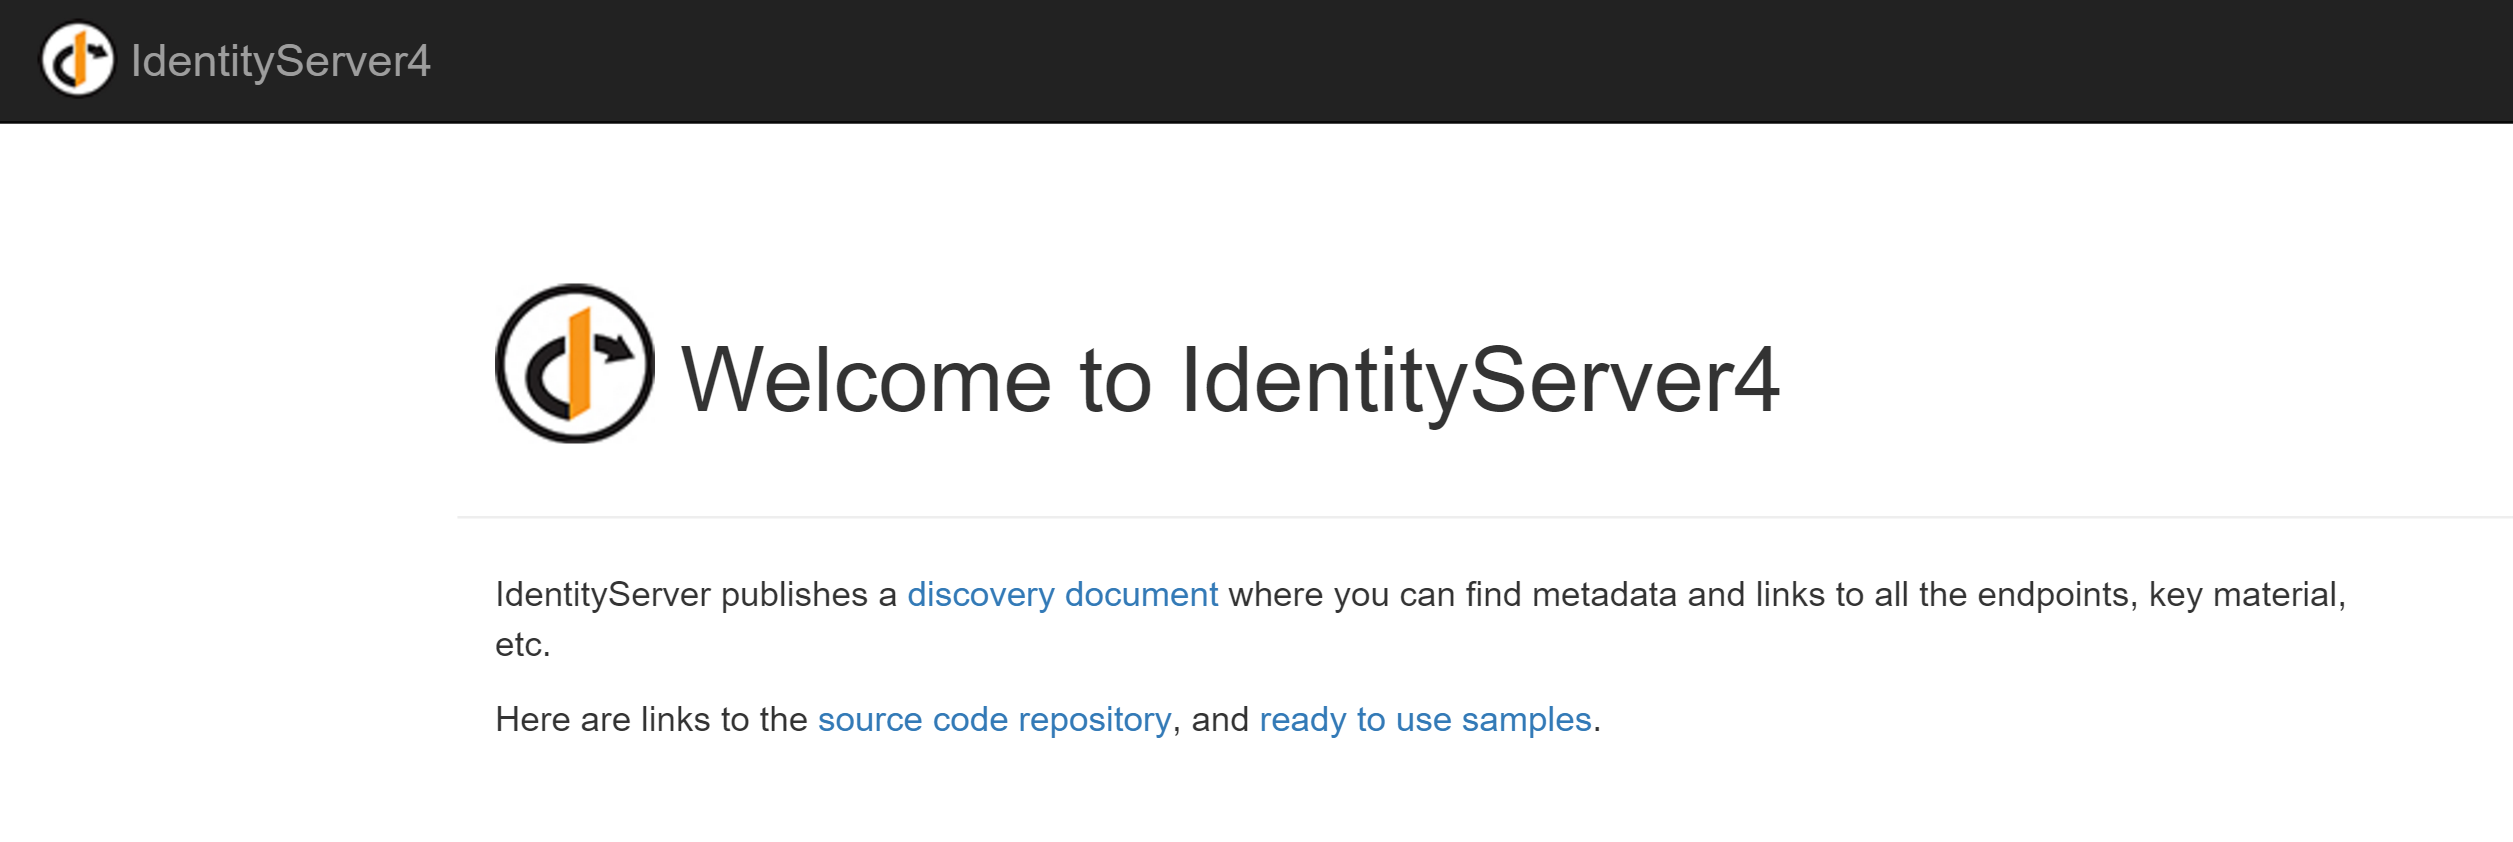 IdentityServer 4 Quickstart UI Splash Screen